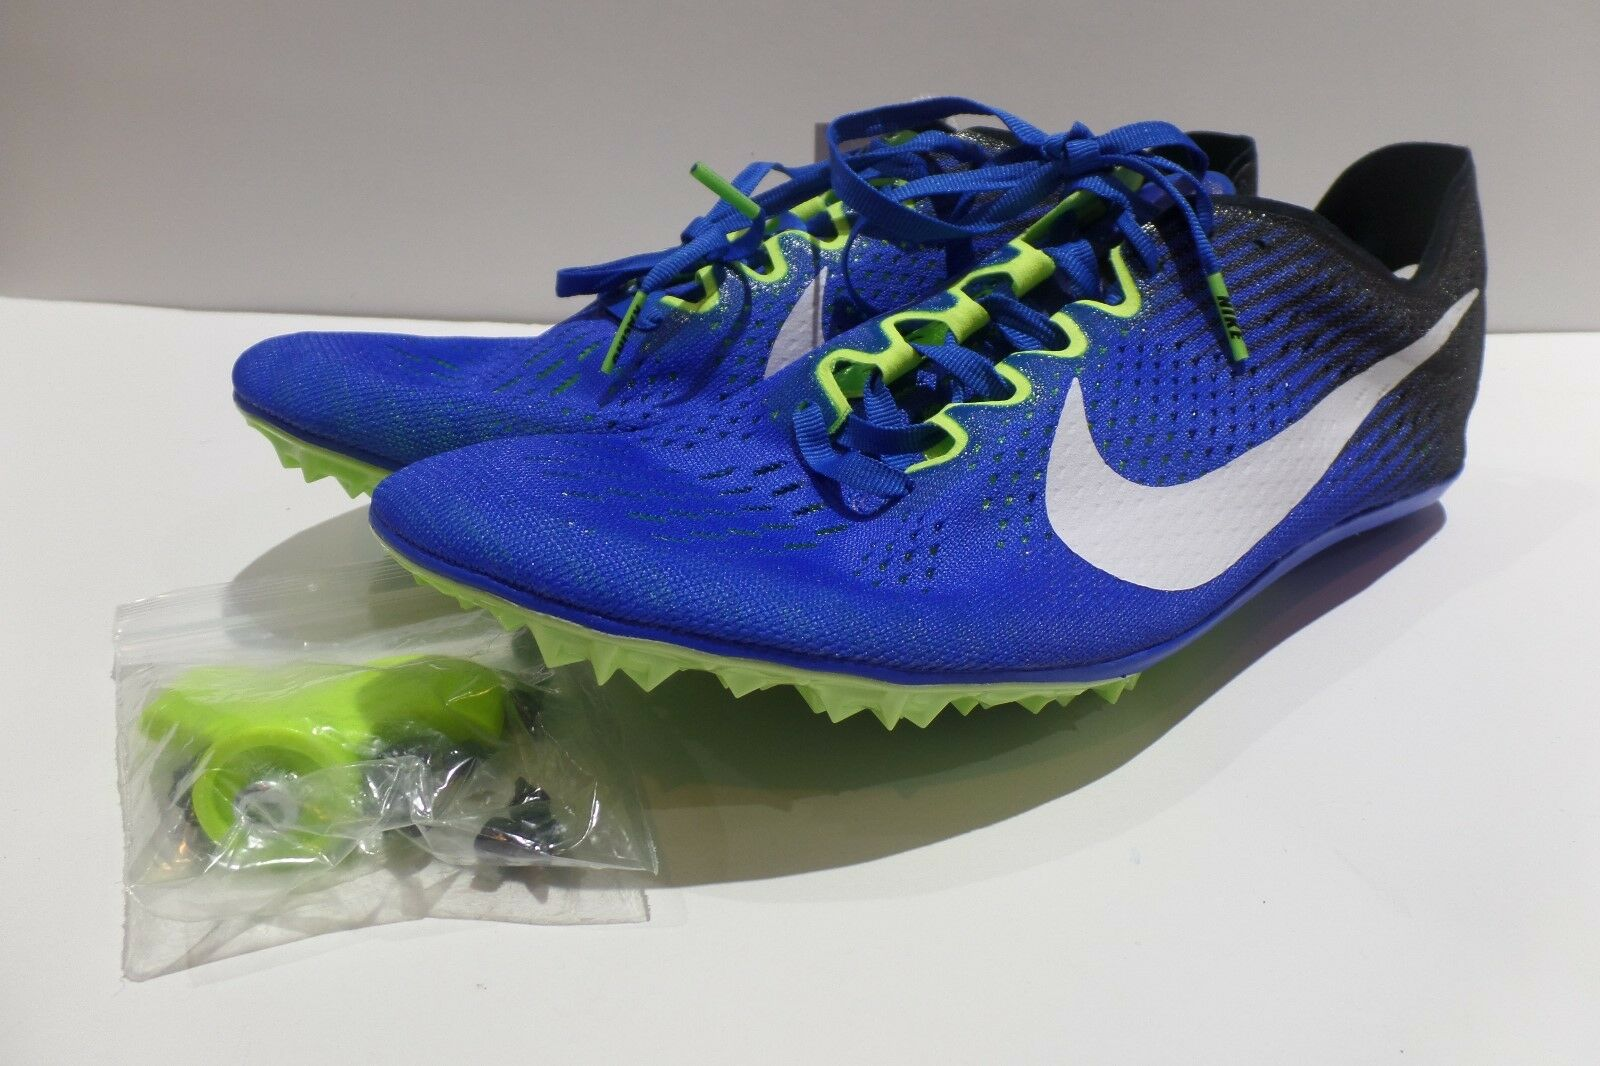 Nike Zoom Victory 3 Sz 12 Track In esecuzione esecuzione esecuzione Spikes bluVolt Nero bianca   30fa4c